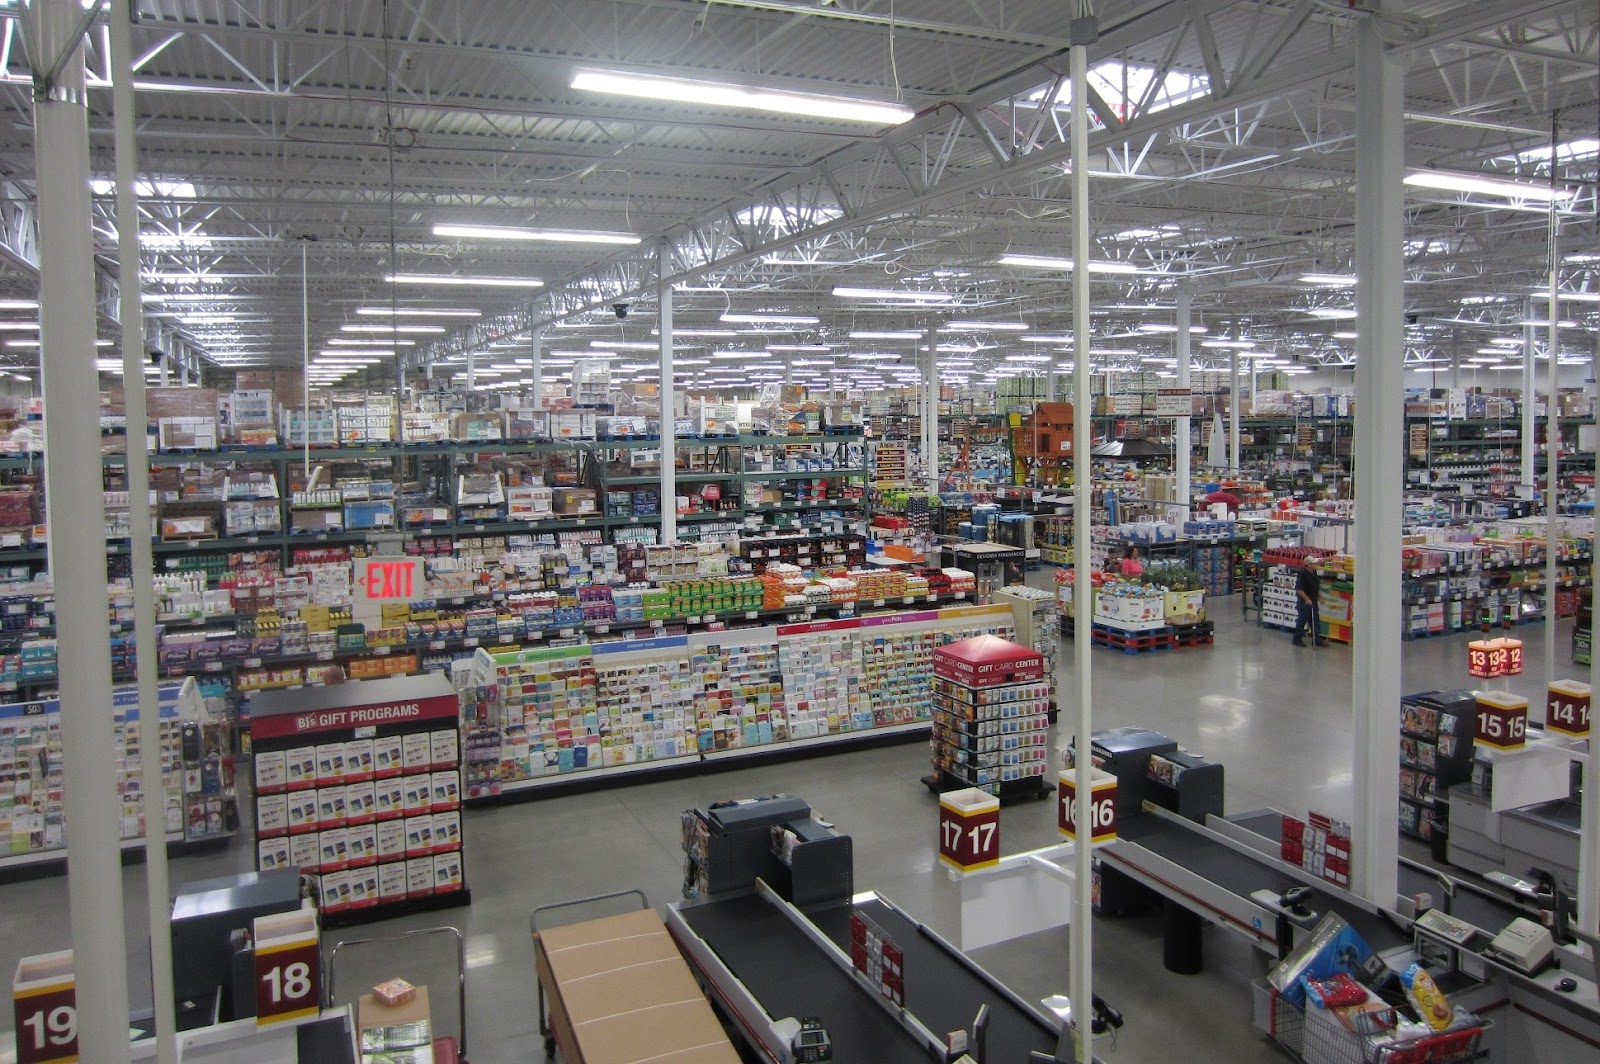 c71110e3e7 ... all their great back to school products for little ones all the way  through college students. The section is front and center when you enter  the club.